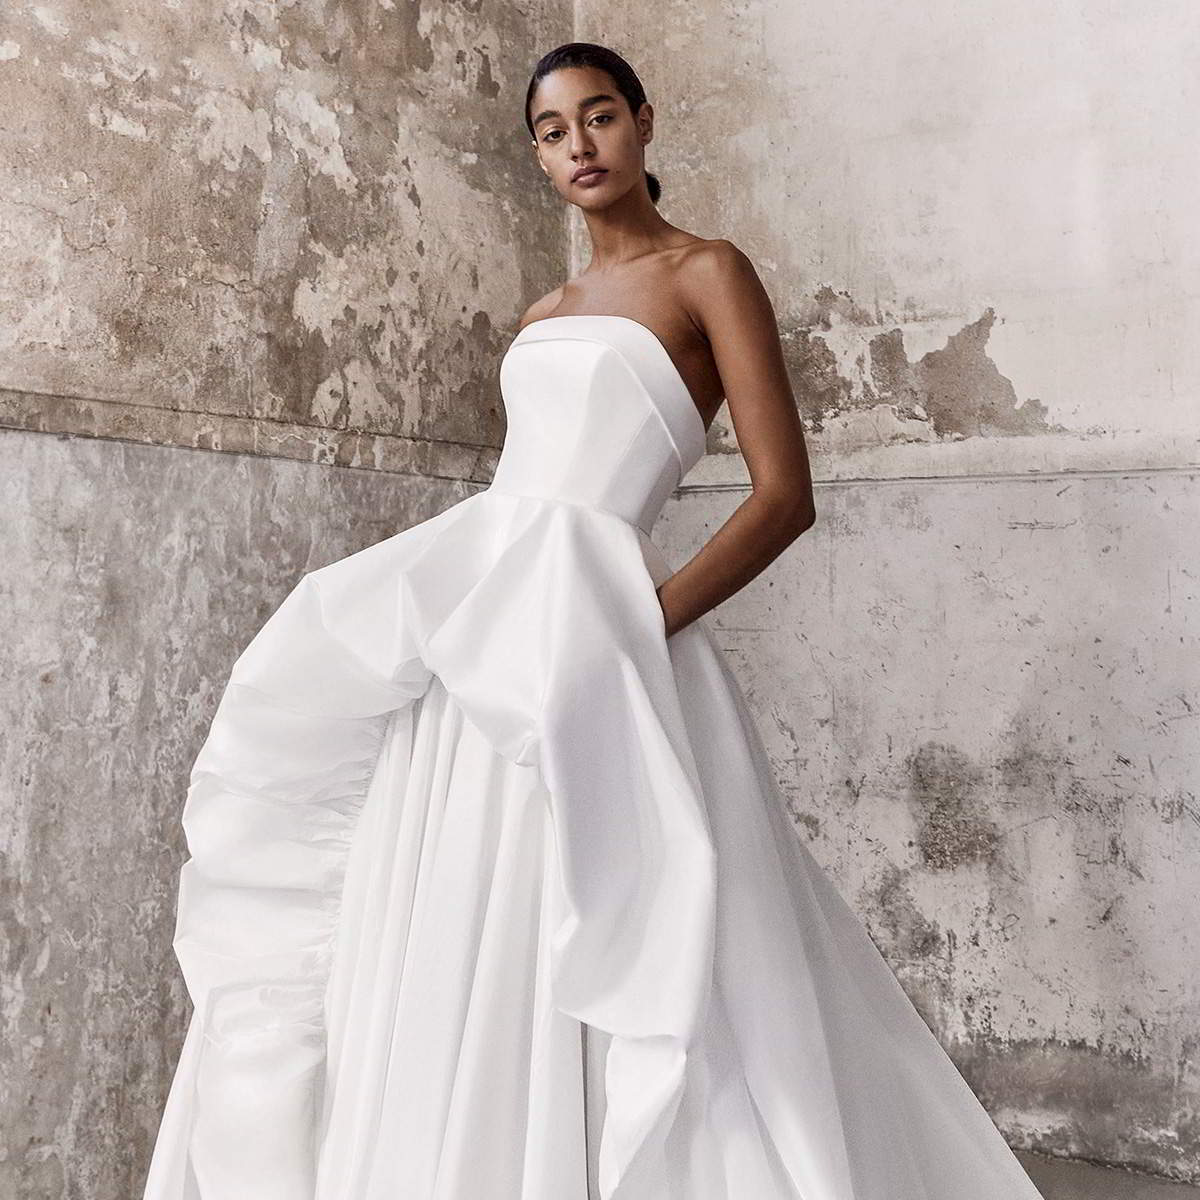 viktor and rolf fall 2021 bridal collection featured on wedding inspirasi thumbnail